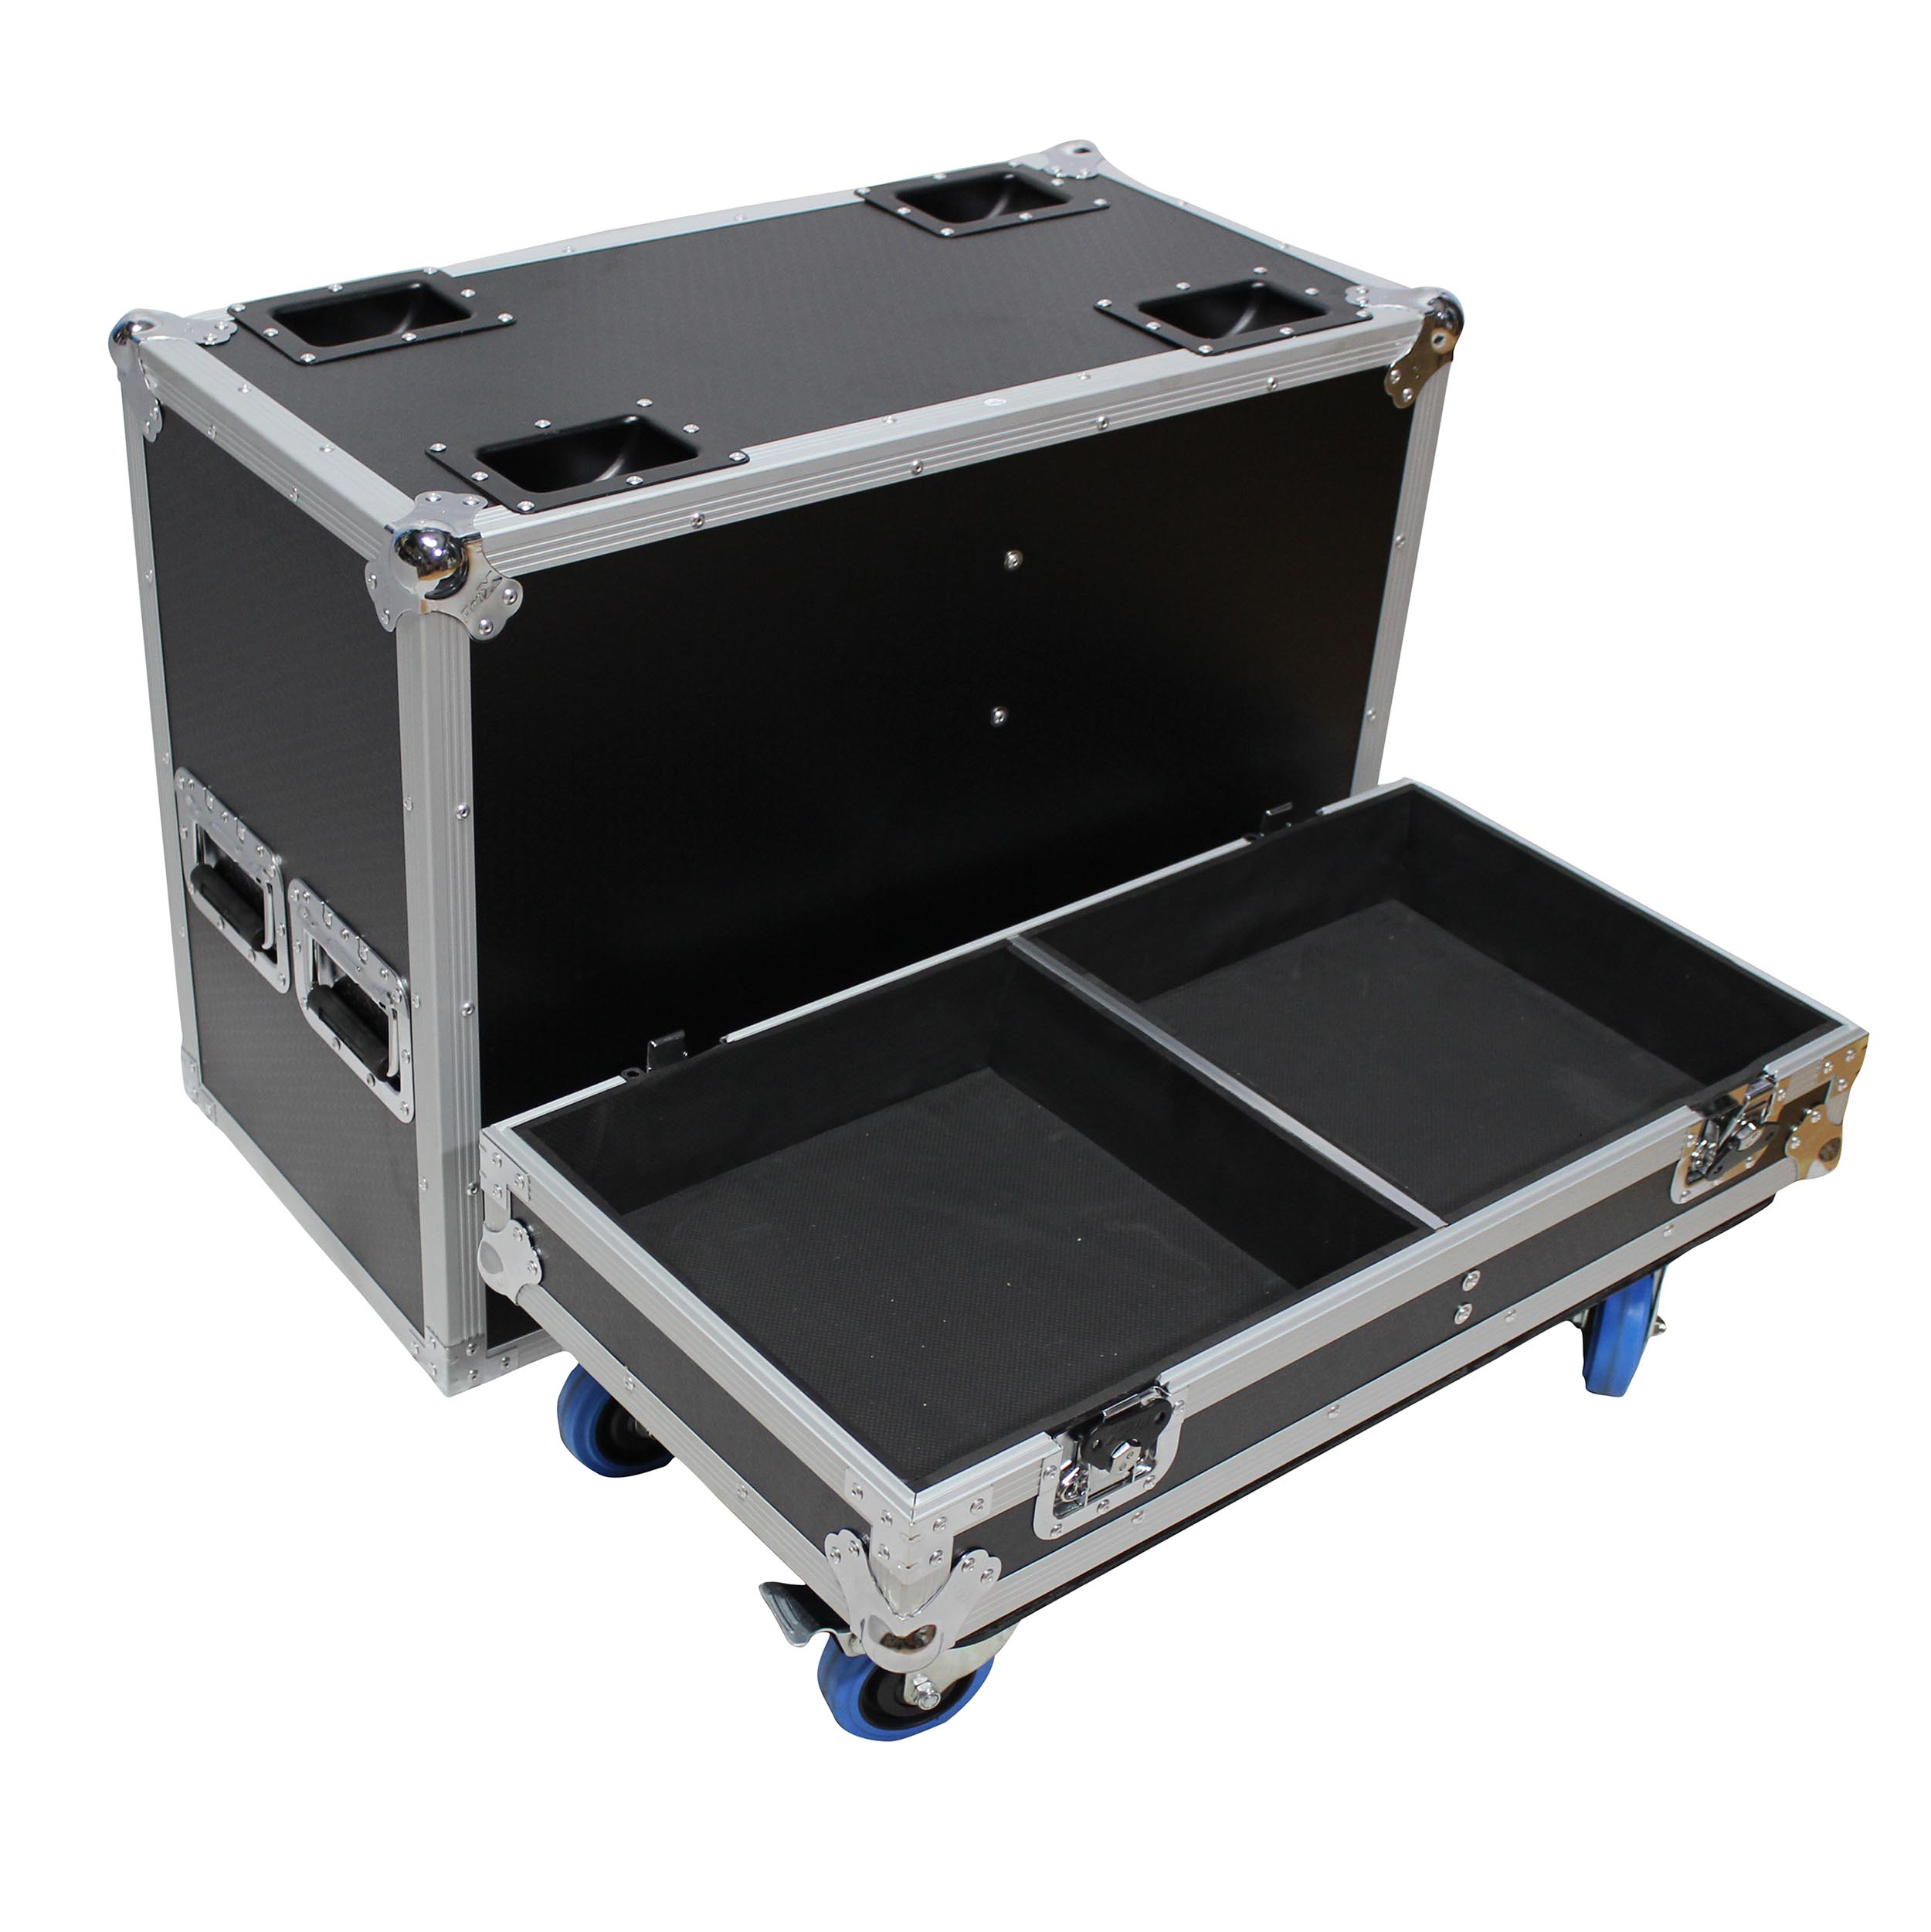 Fits 2x Rcf Evox 8 Colunm Array Subwoofer Flight Case With